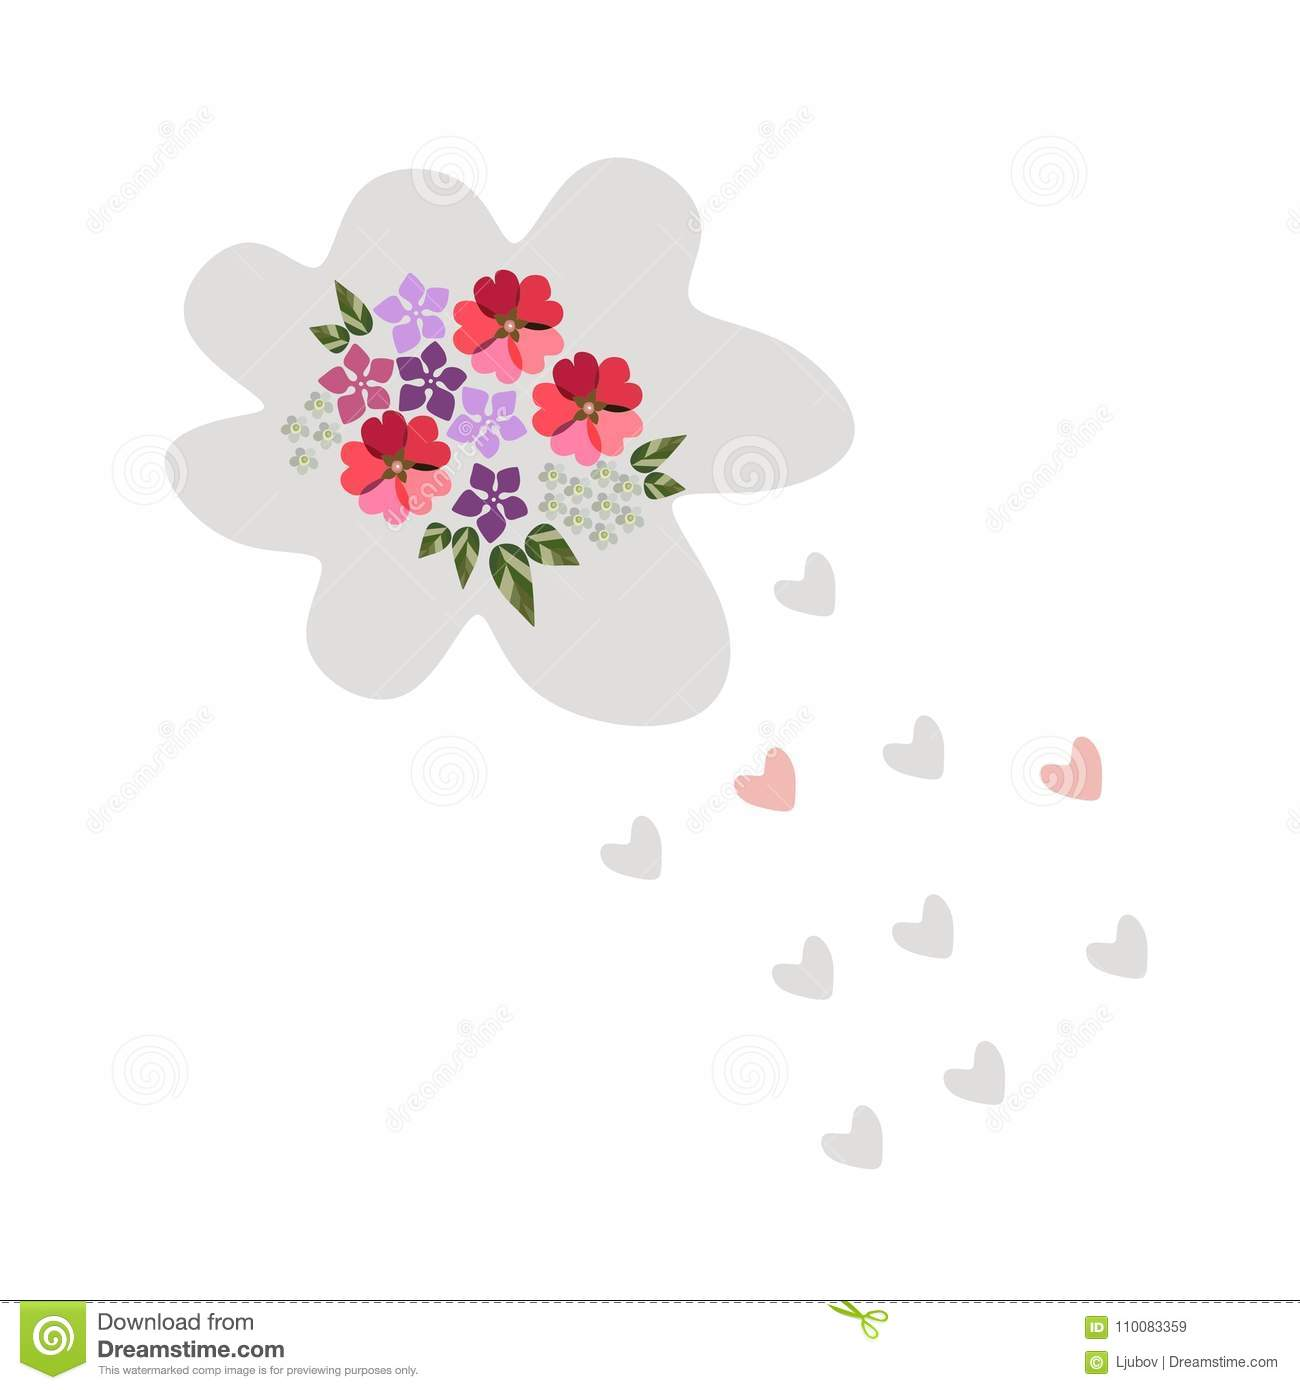 Cute cartoon cloud with flowers and drops as hearts beautiful card cute cartoon cloud with flowers and drops as hearts beautiful card izmirmasajfo